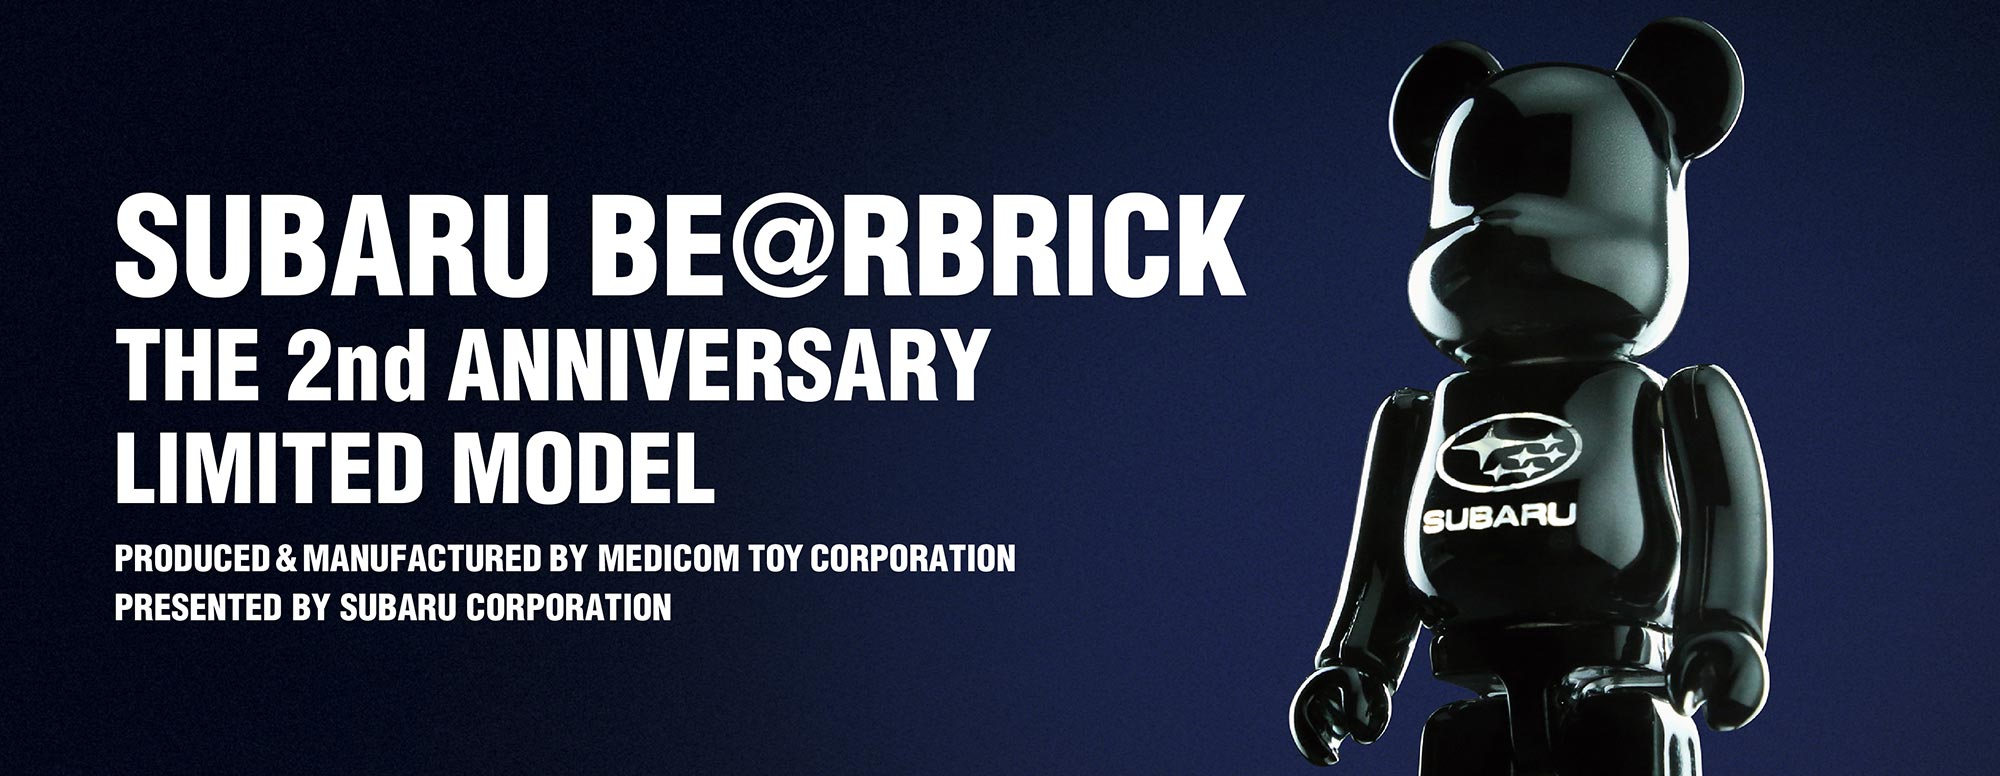 SUBARU BE@RBRICK THE 2nd ANNIVERSARY LIMITED MODEL